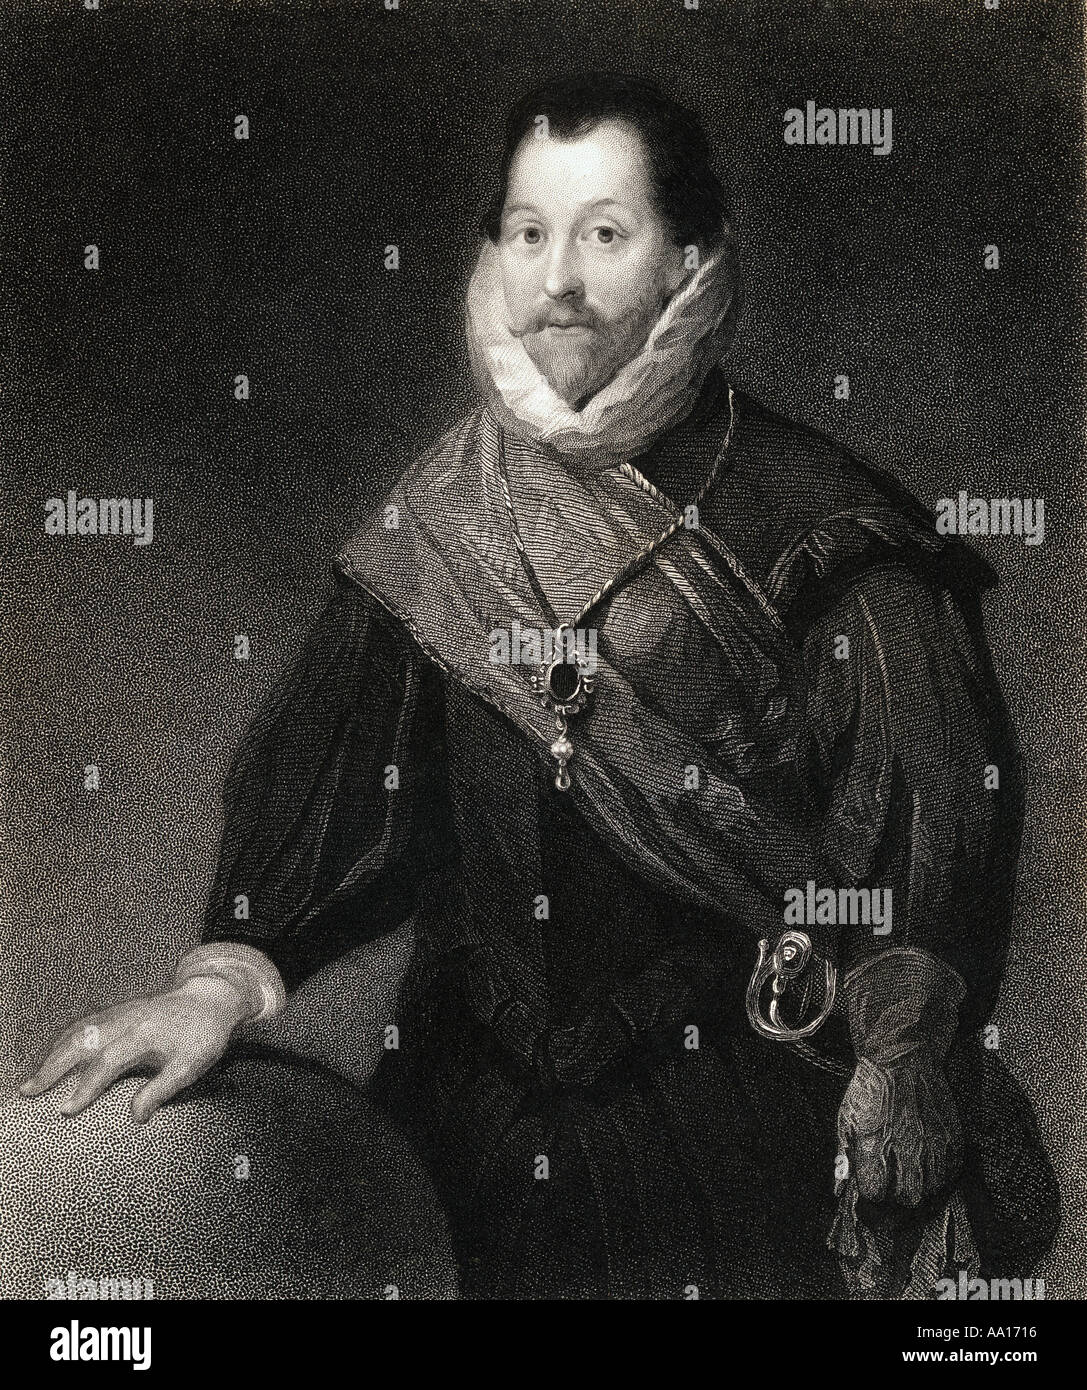 Sir Francis Drake  c.1540 - 1596.  English sea captain, privateer, slave trader, naval officer and explorer of the Elizabethan era. - Stock Image